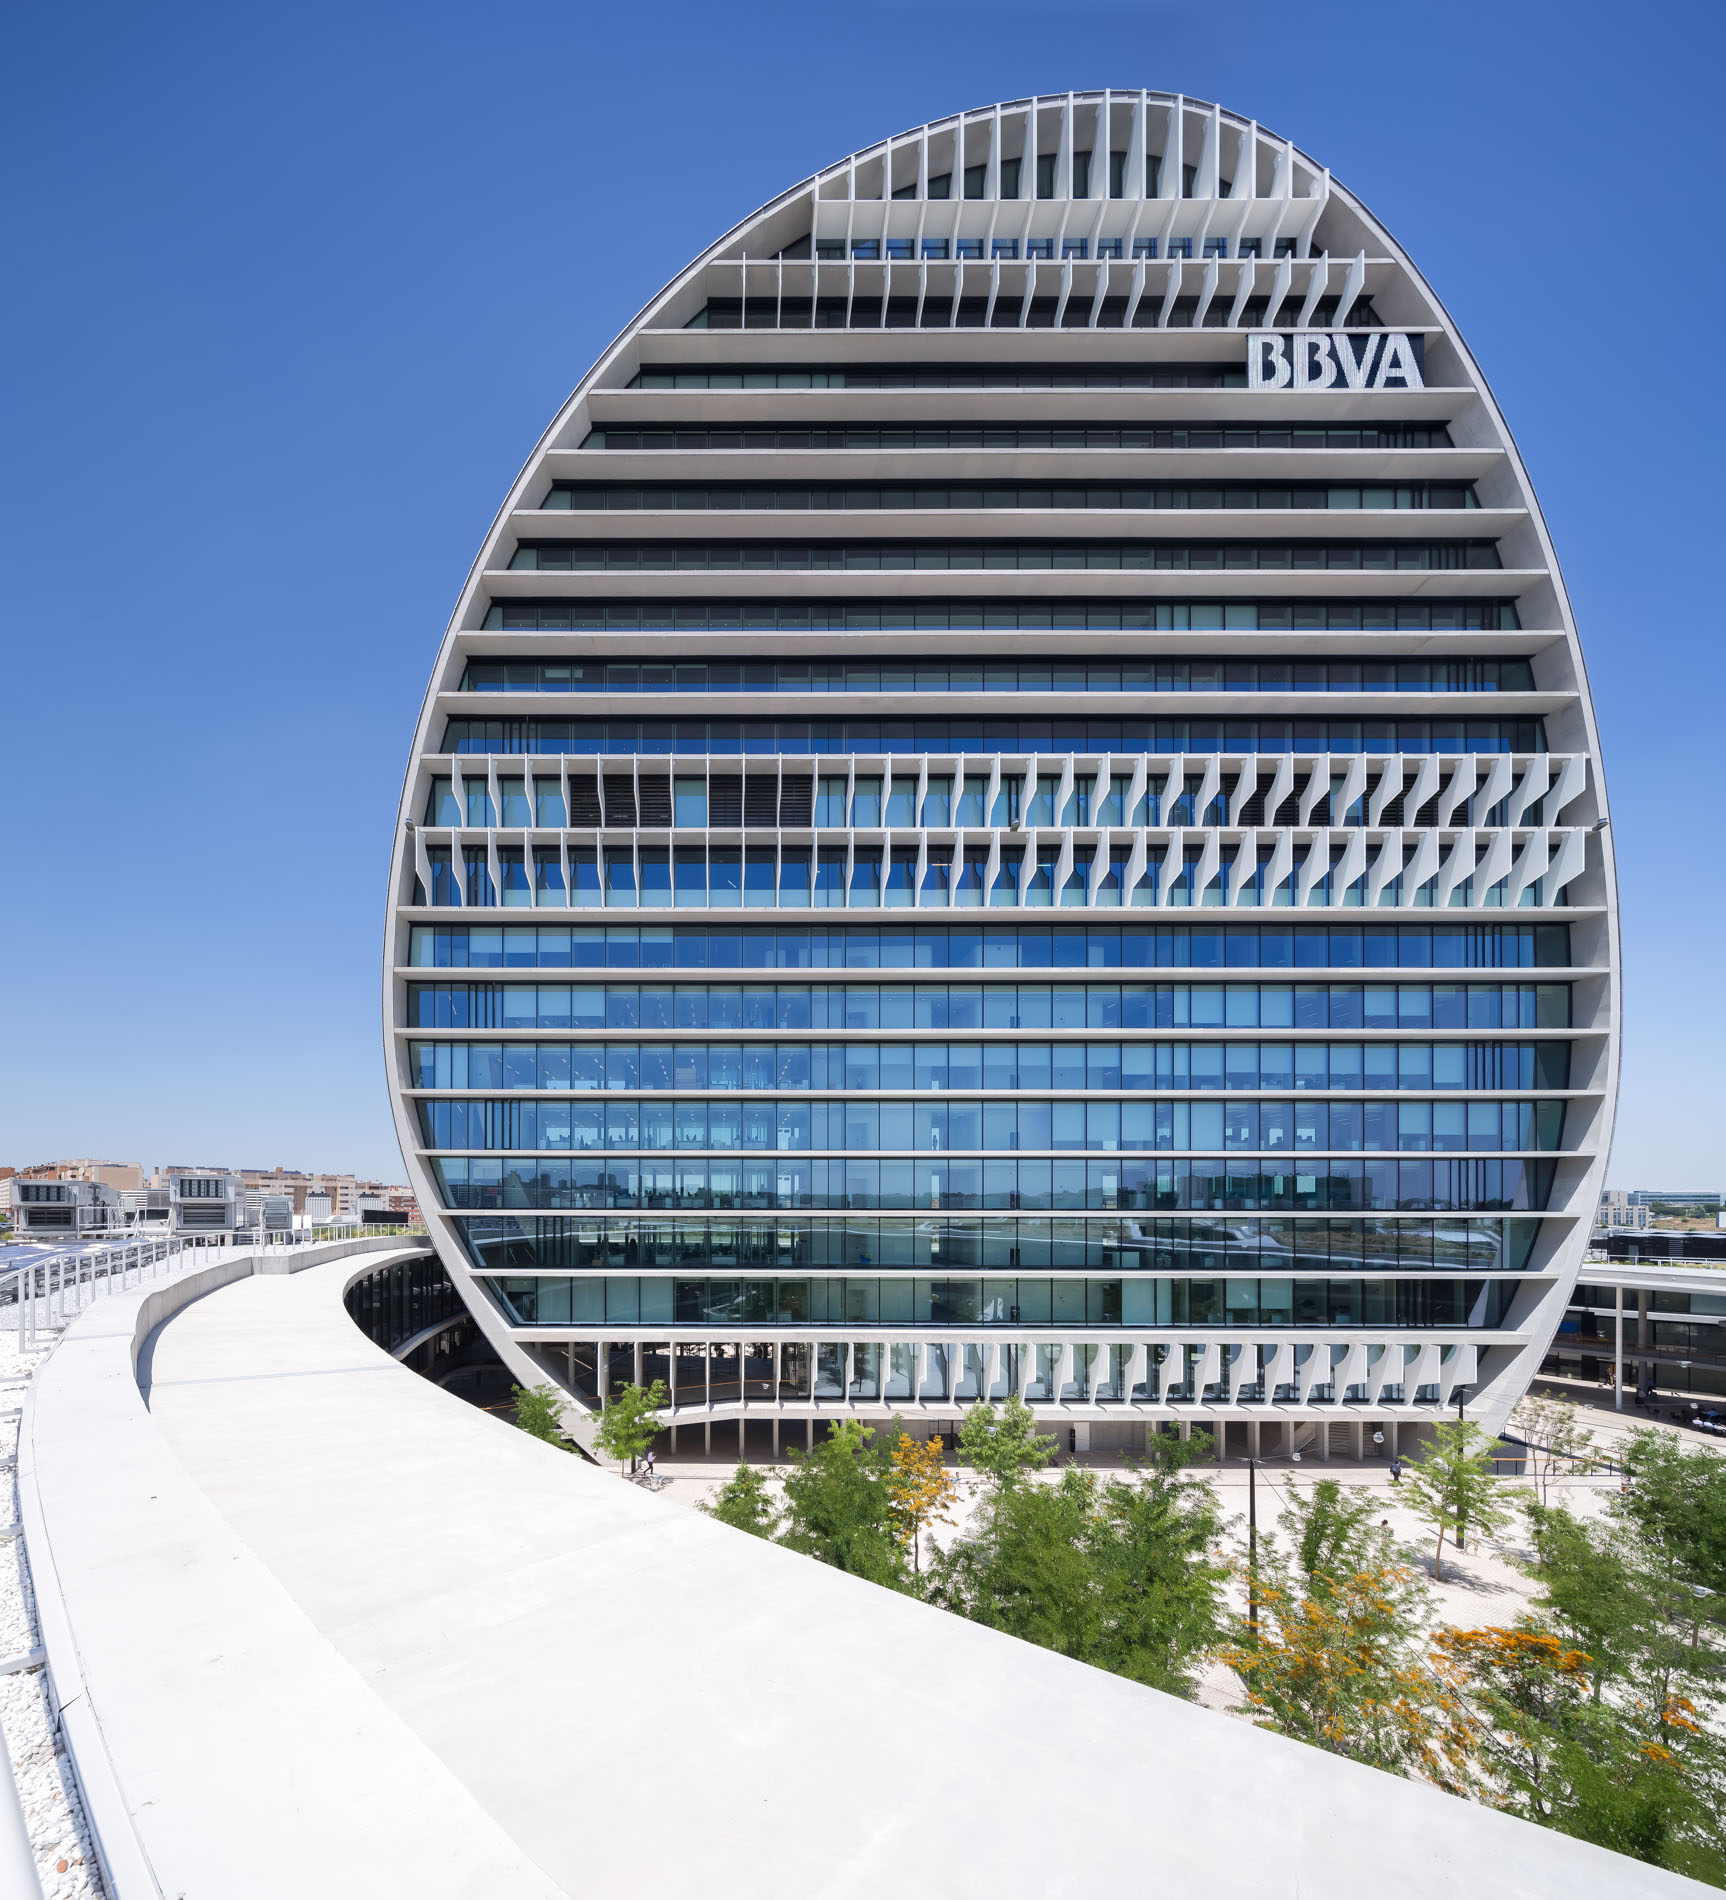 https://shareholdersandinvestors.bbva.com/wp-content/uploads/2017/05/BBVA-HEADQUARTERS-MADRID-040.jpg